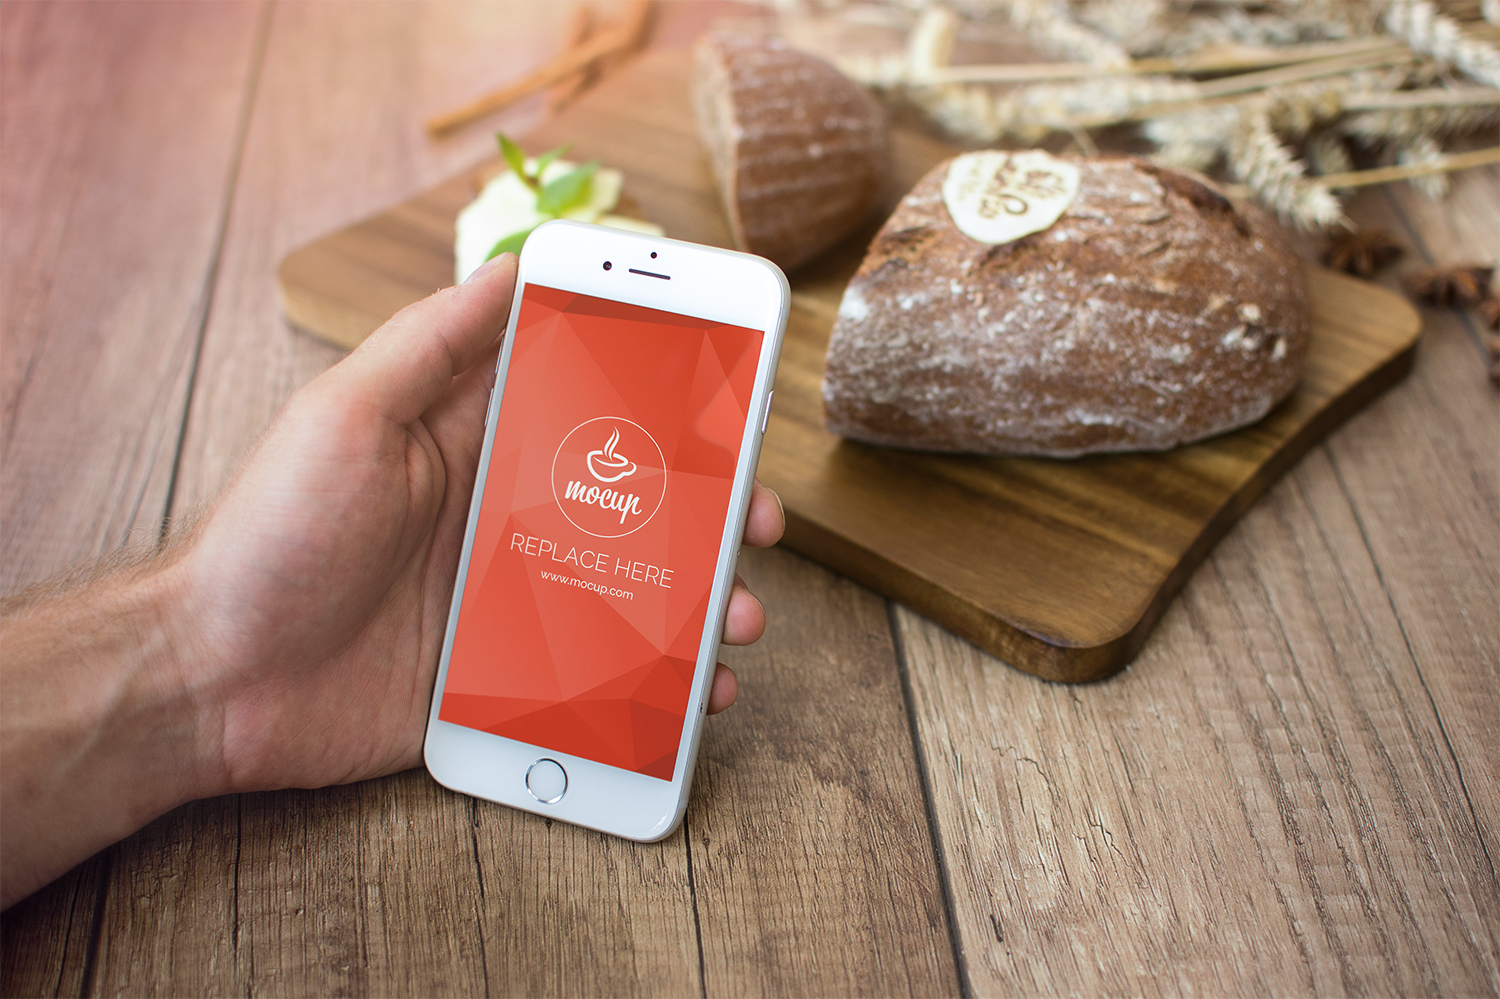 Free PSD Mockup iPhone 6 Breakfast